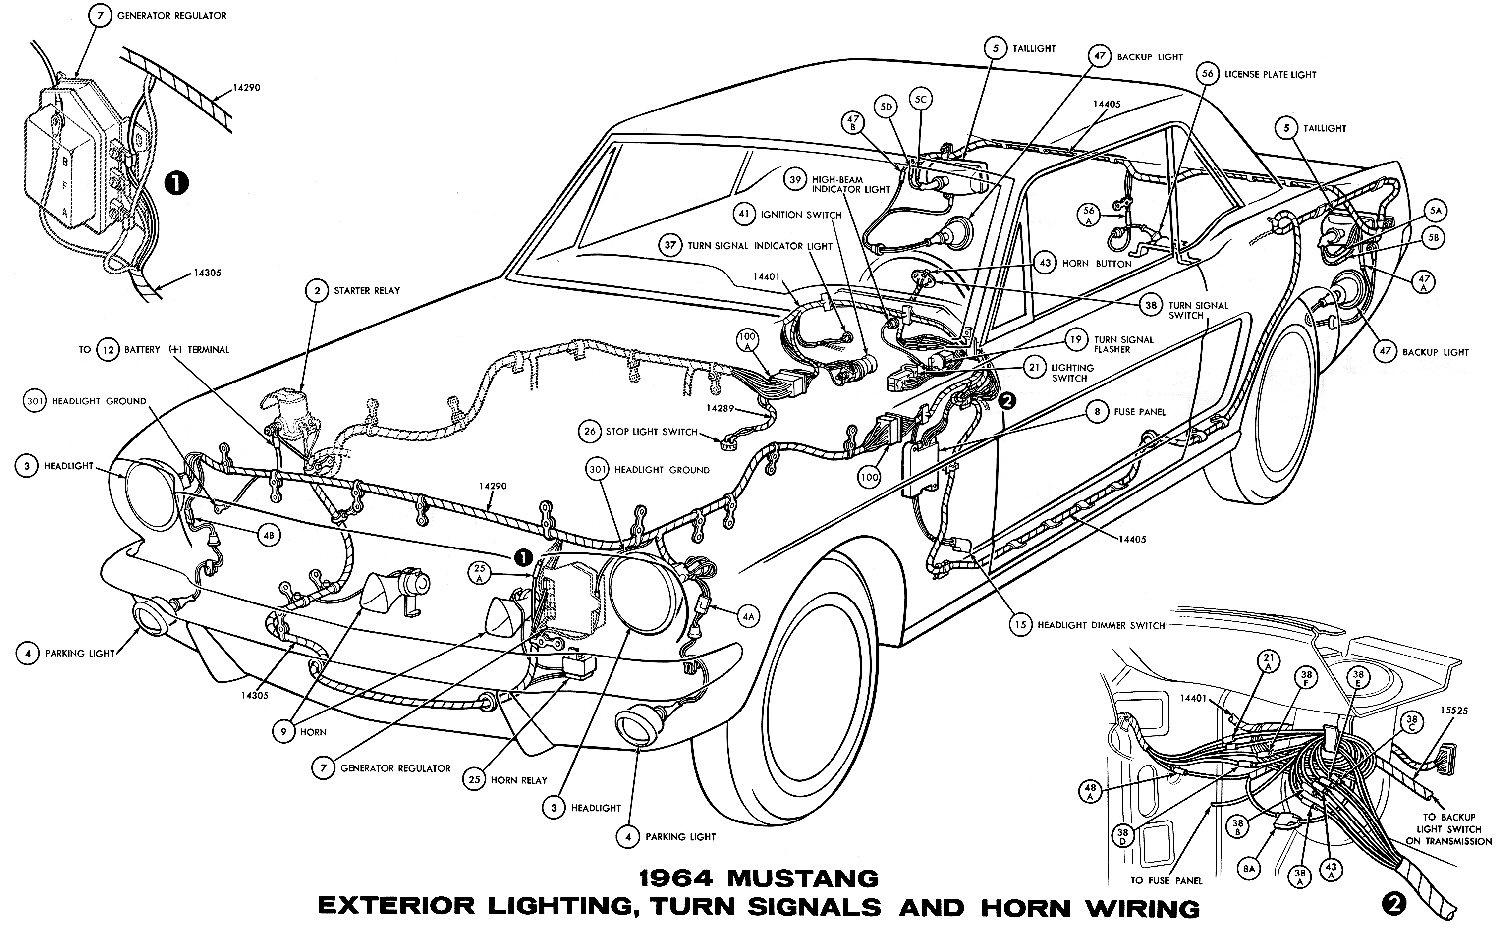 1965 Mustang Turn Signal Flasher Wiring Diagram Download 1964 Ford Fuel Gauge Diagrams Average Joe Restoration Rh Averagejoerestoration Com Gas